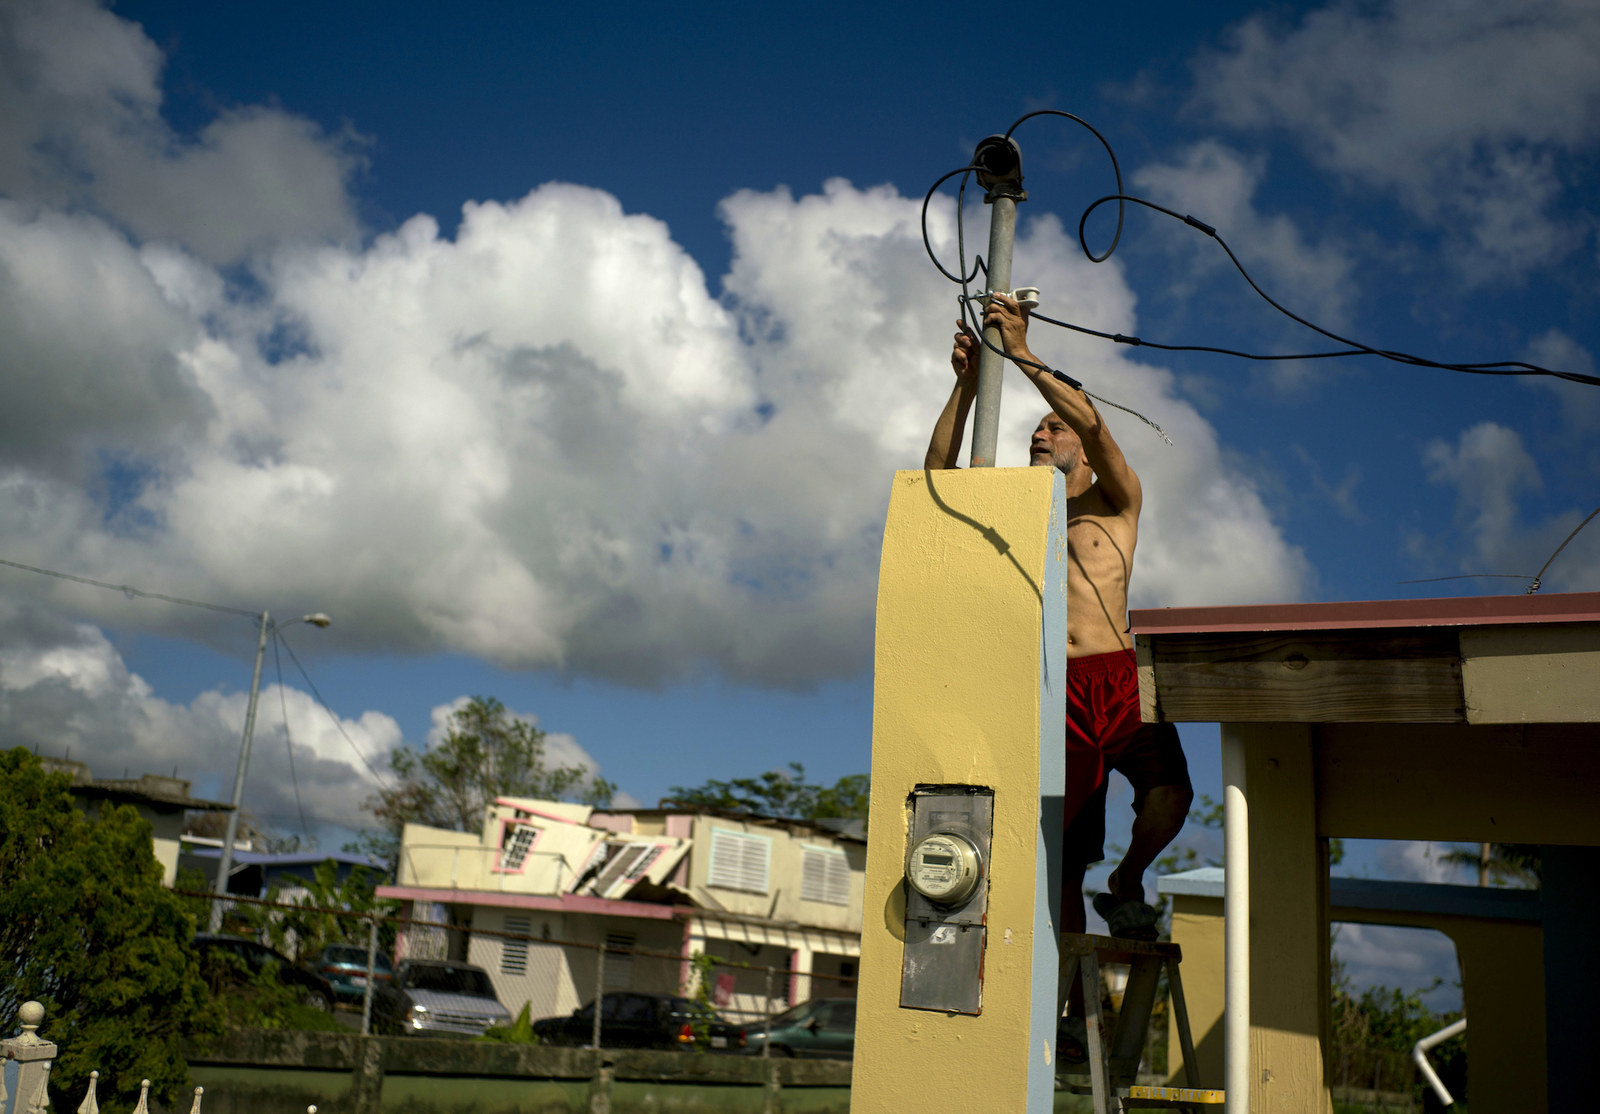 A resident tries to connect electrical lines downed by Hurricane Maria.